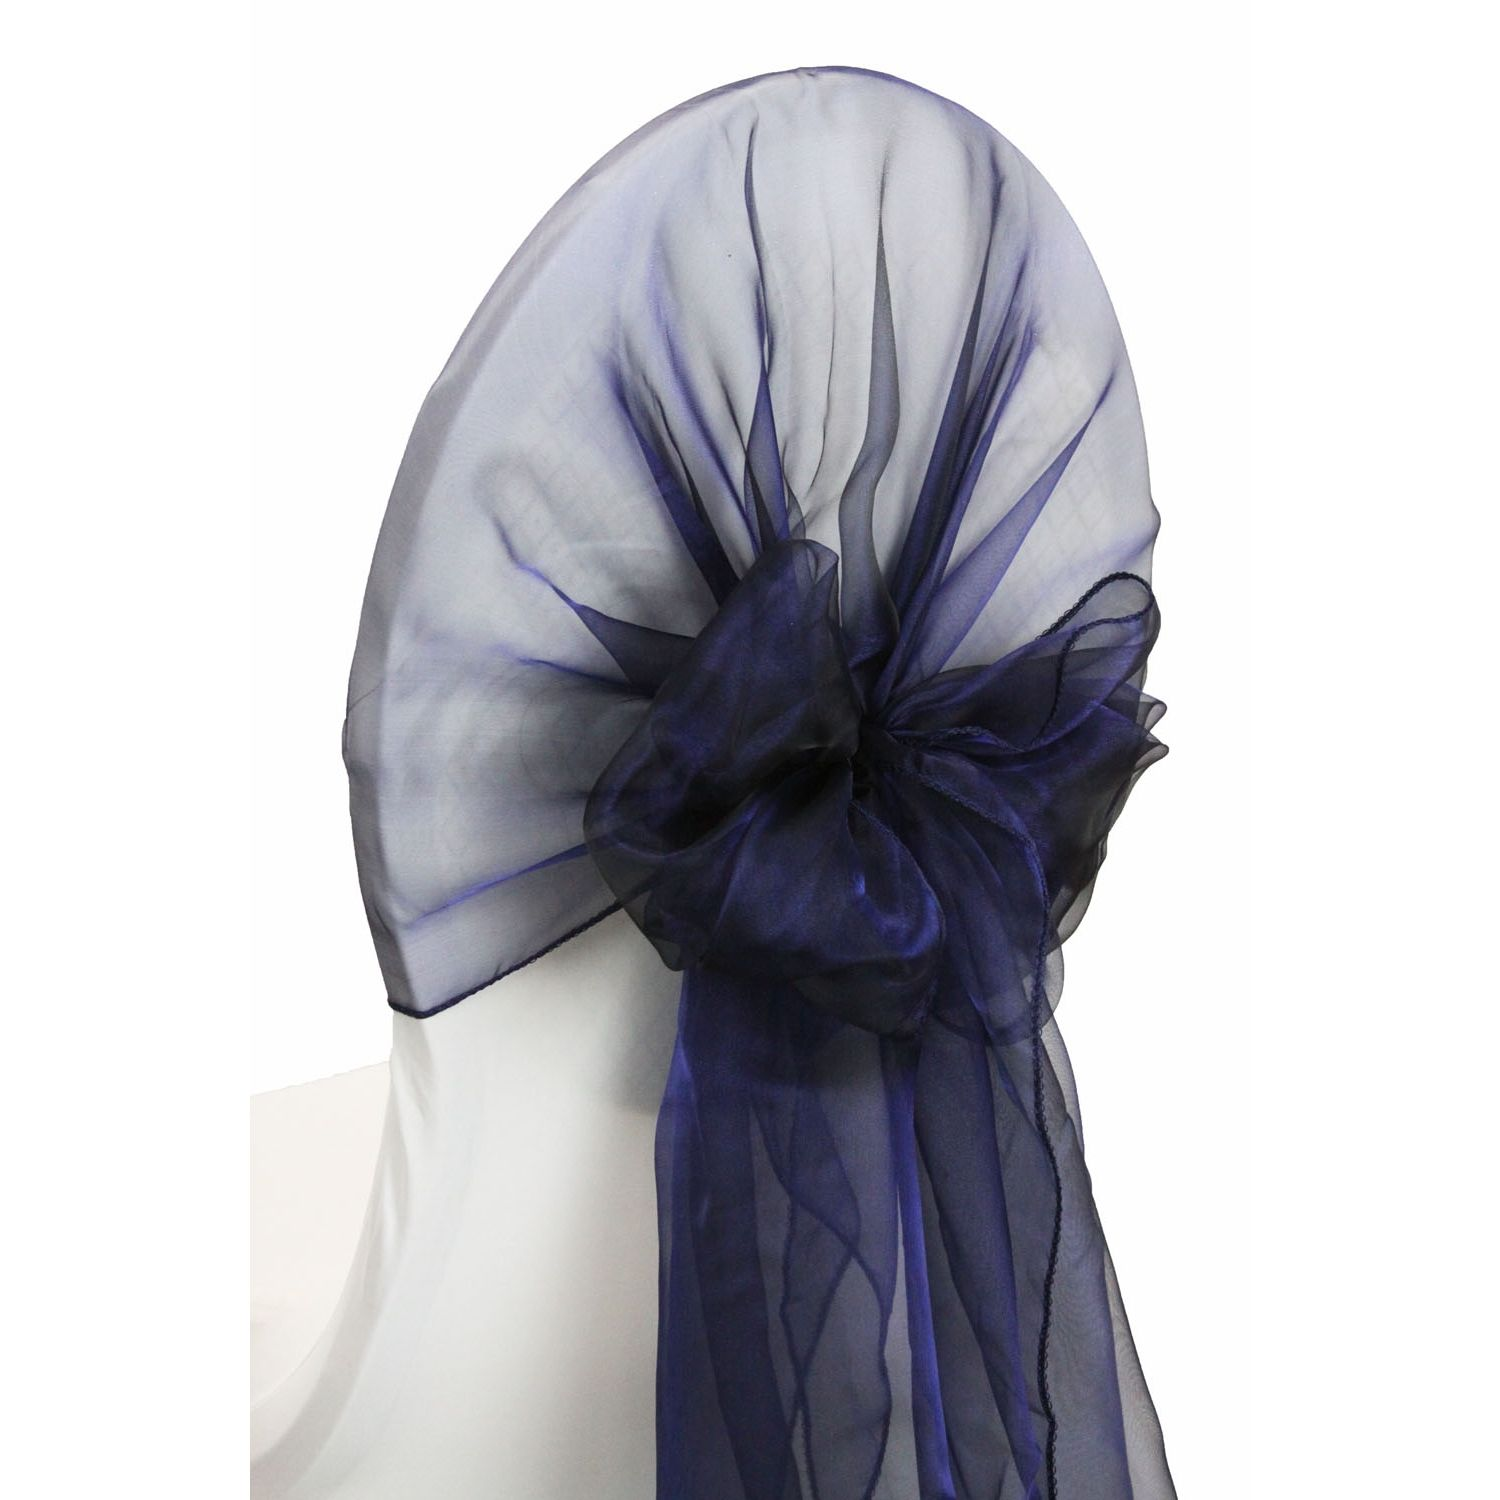 Snow Organza Chair Caps/hoods Navy Blue (clearance) in